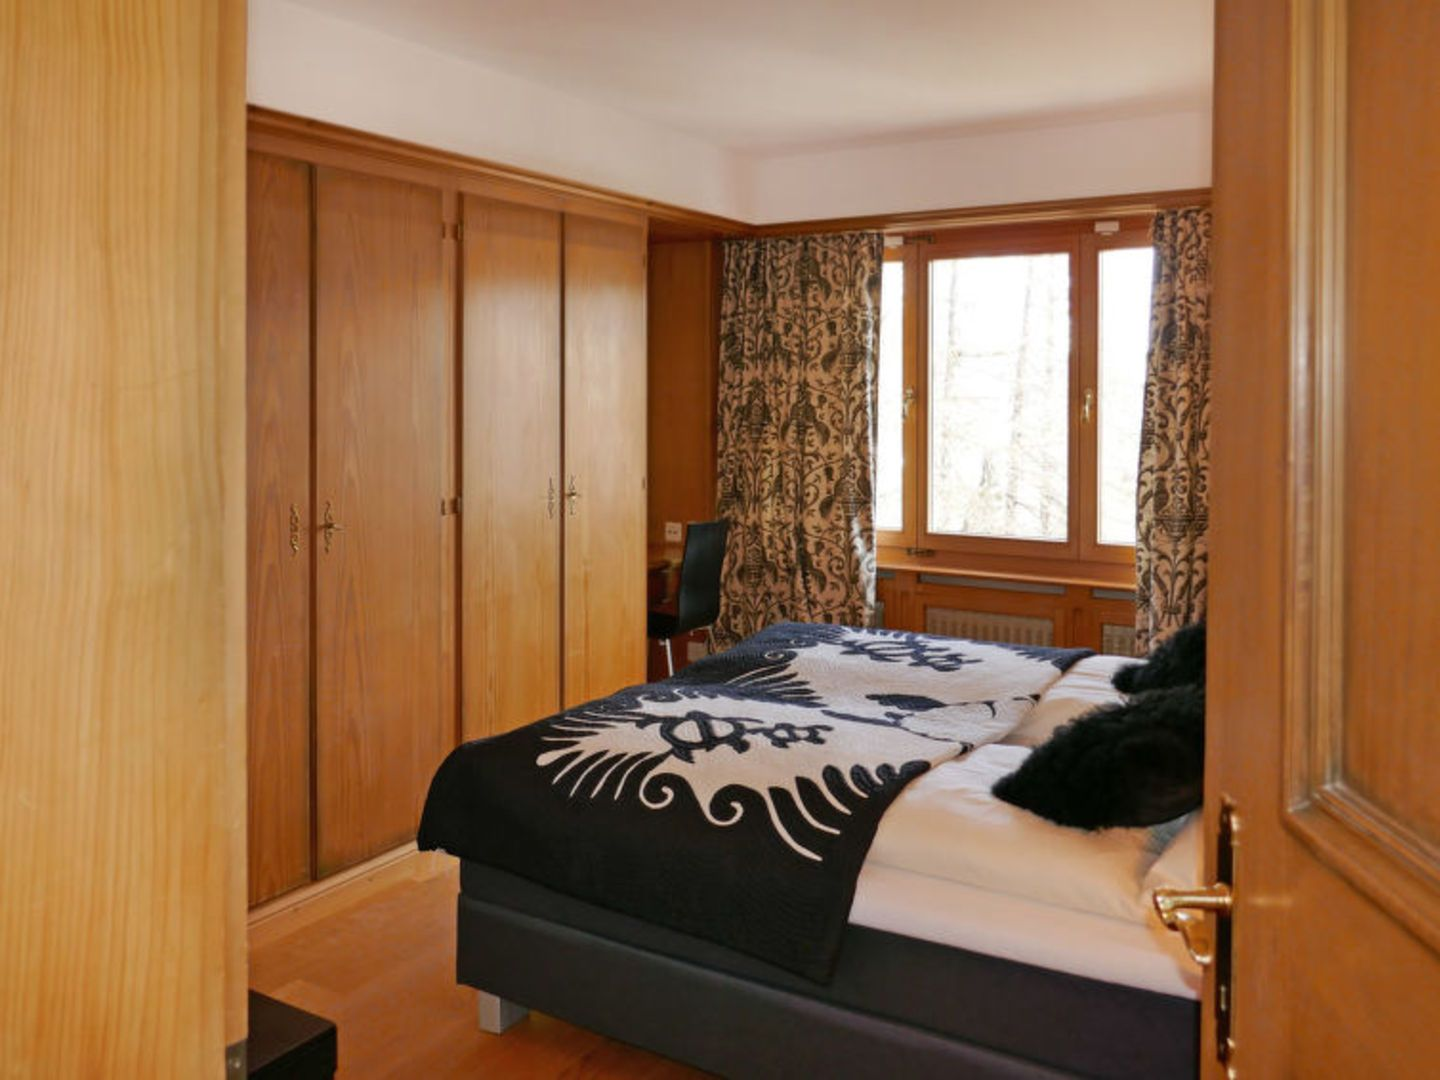 Nice 3 room apartment for rent in St. Moritz